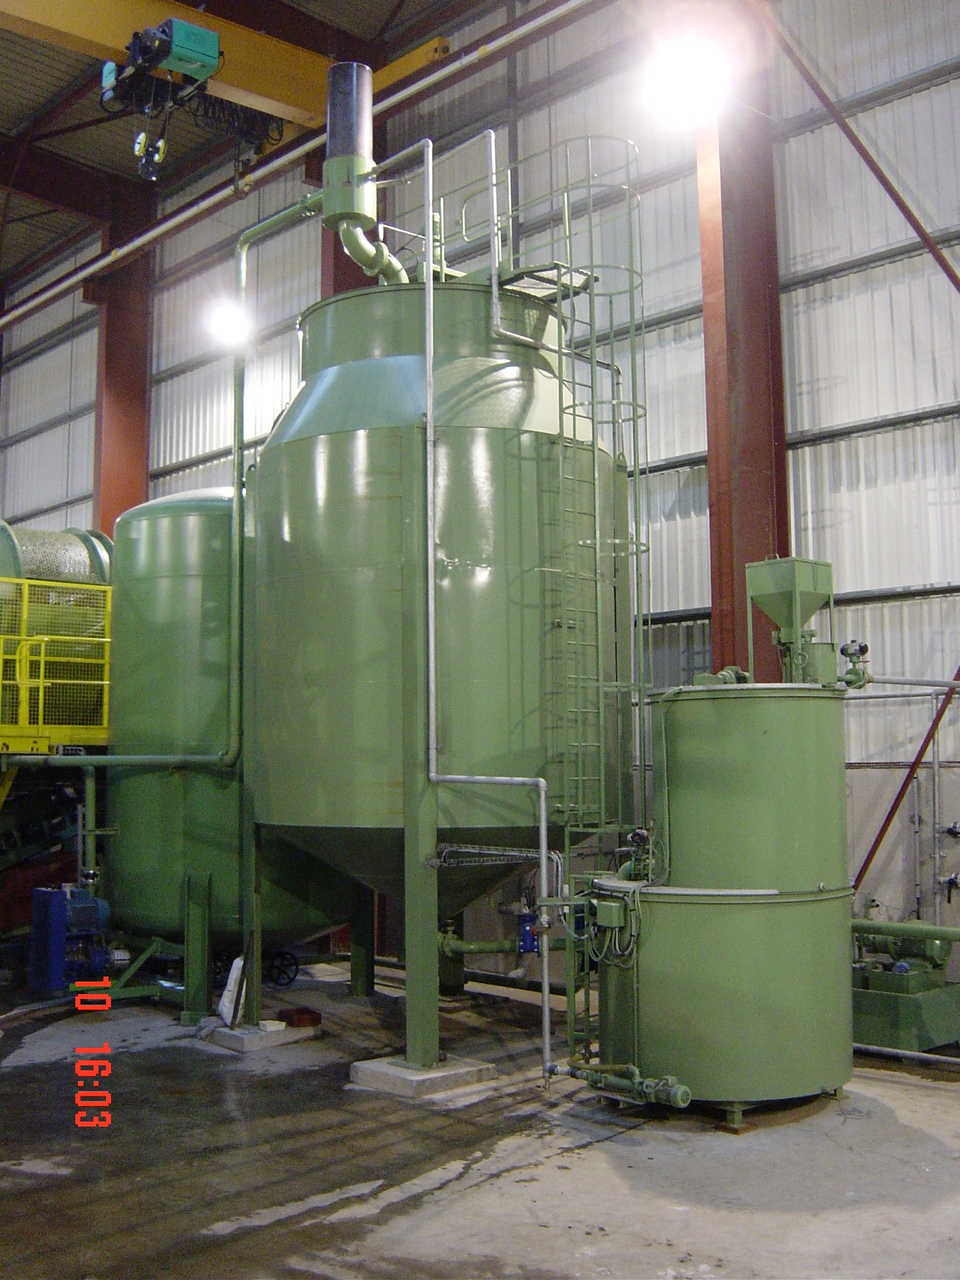 Water and sludge treatment plant of a separation plant for plastics, rubbers, aluminum